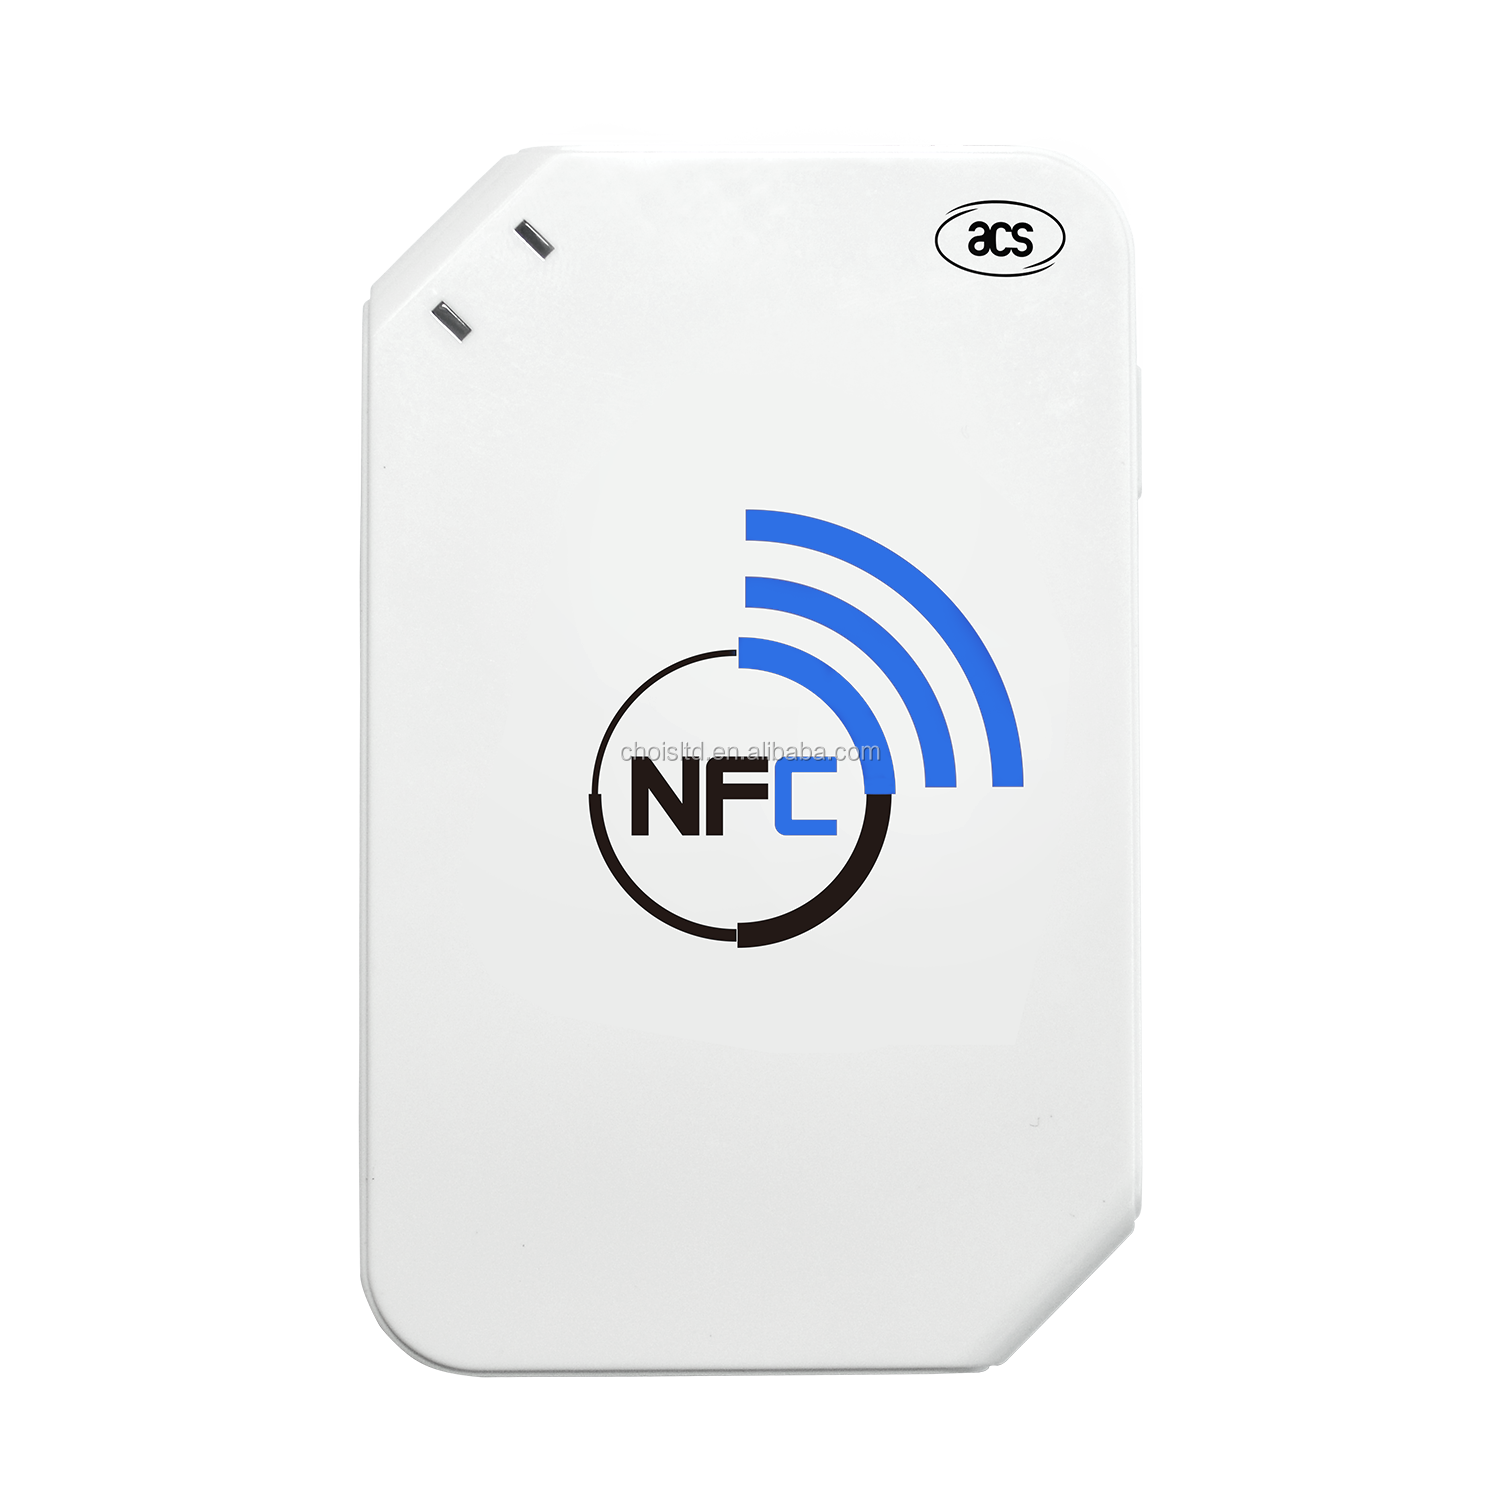 Original ACR1255U Secure Bluetooth NFC Reader, Latest 13.56 MHz ContactlessTechnology